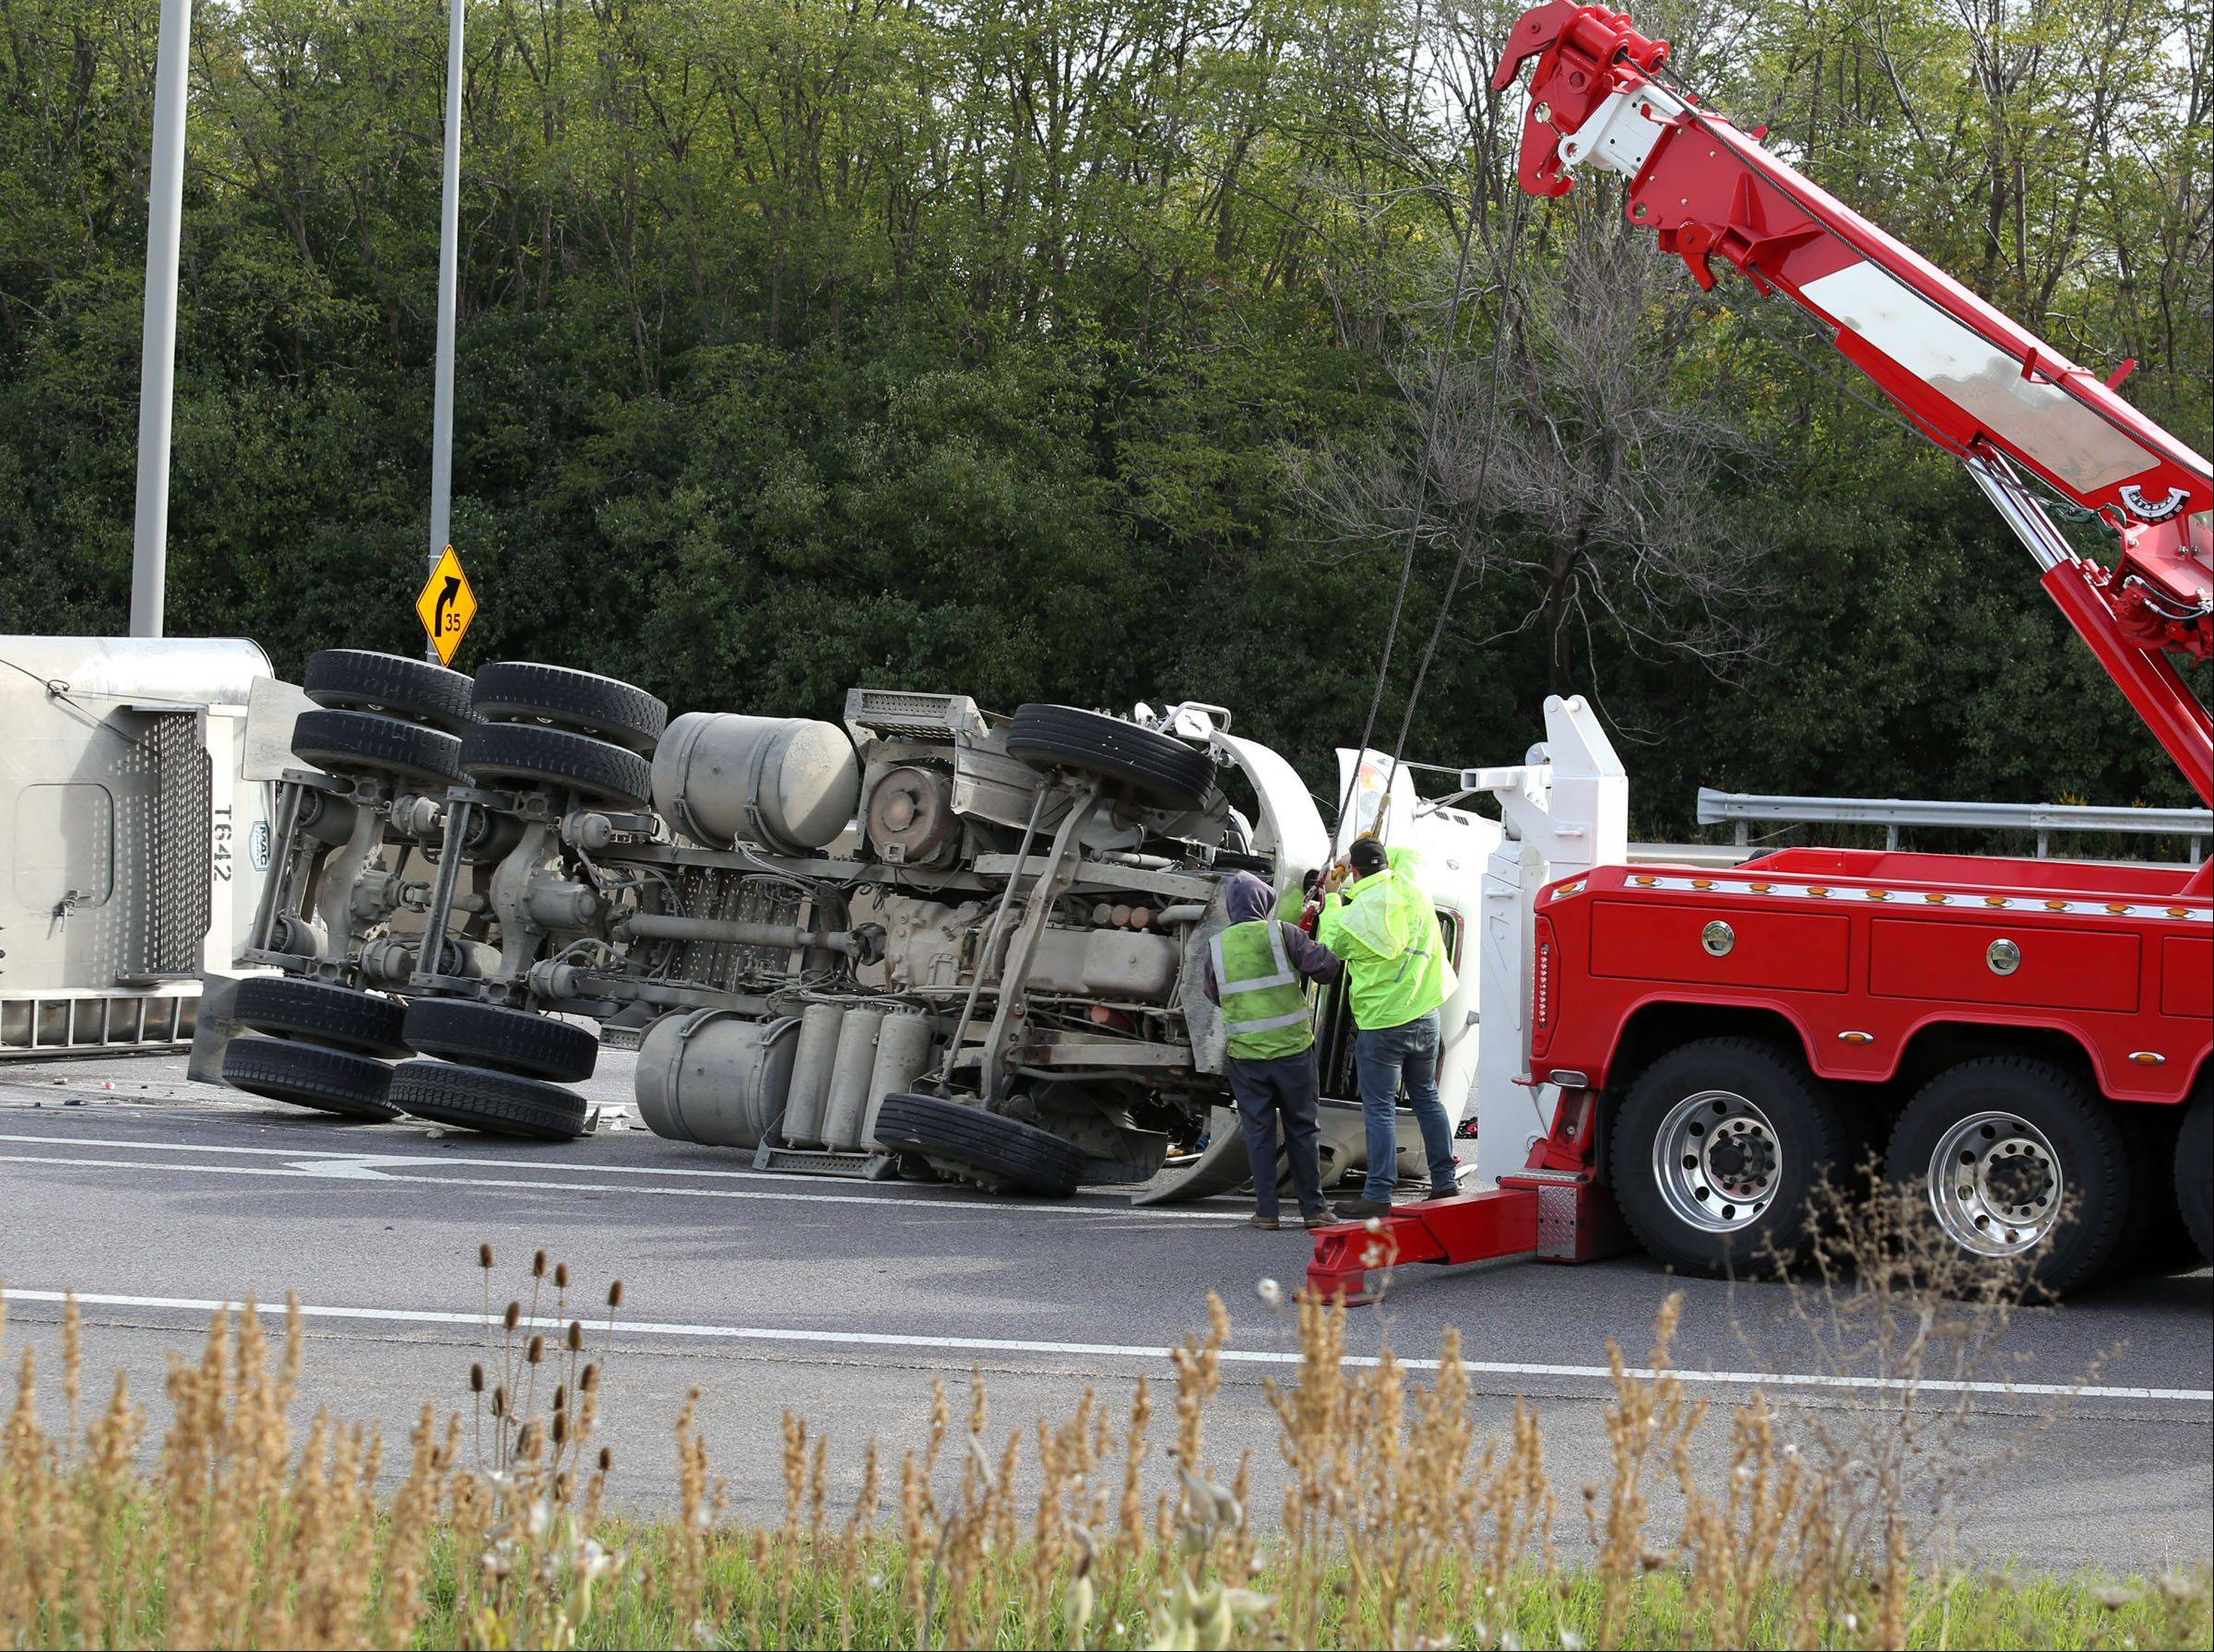 A rolled over semi truck blocked all southbound lanes on Route 53 just south of Euclid Avenue Tuesday morning, causing long delays.